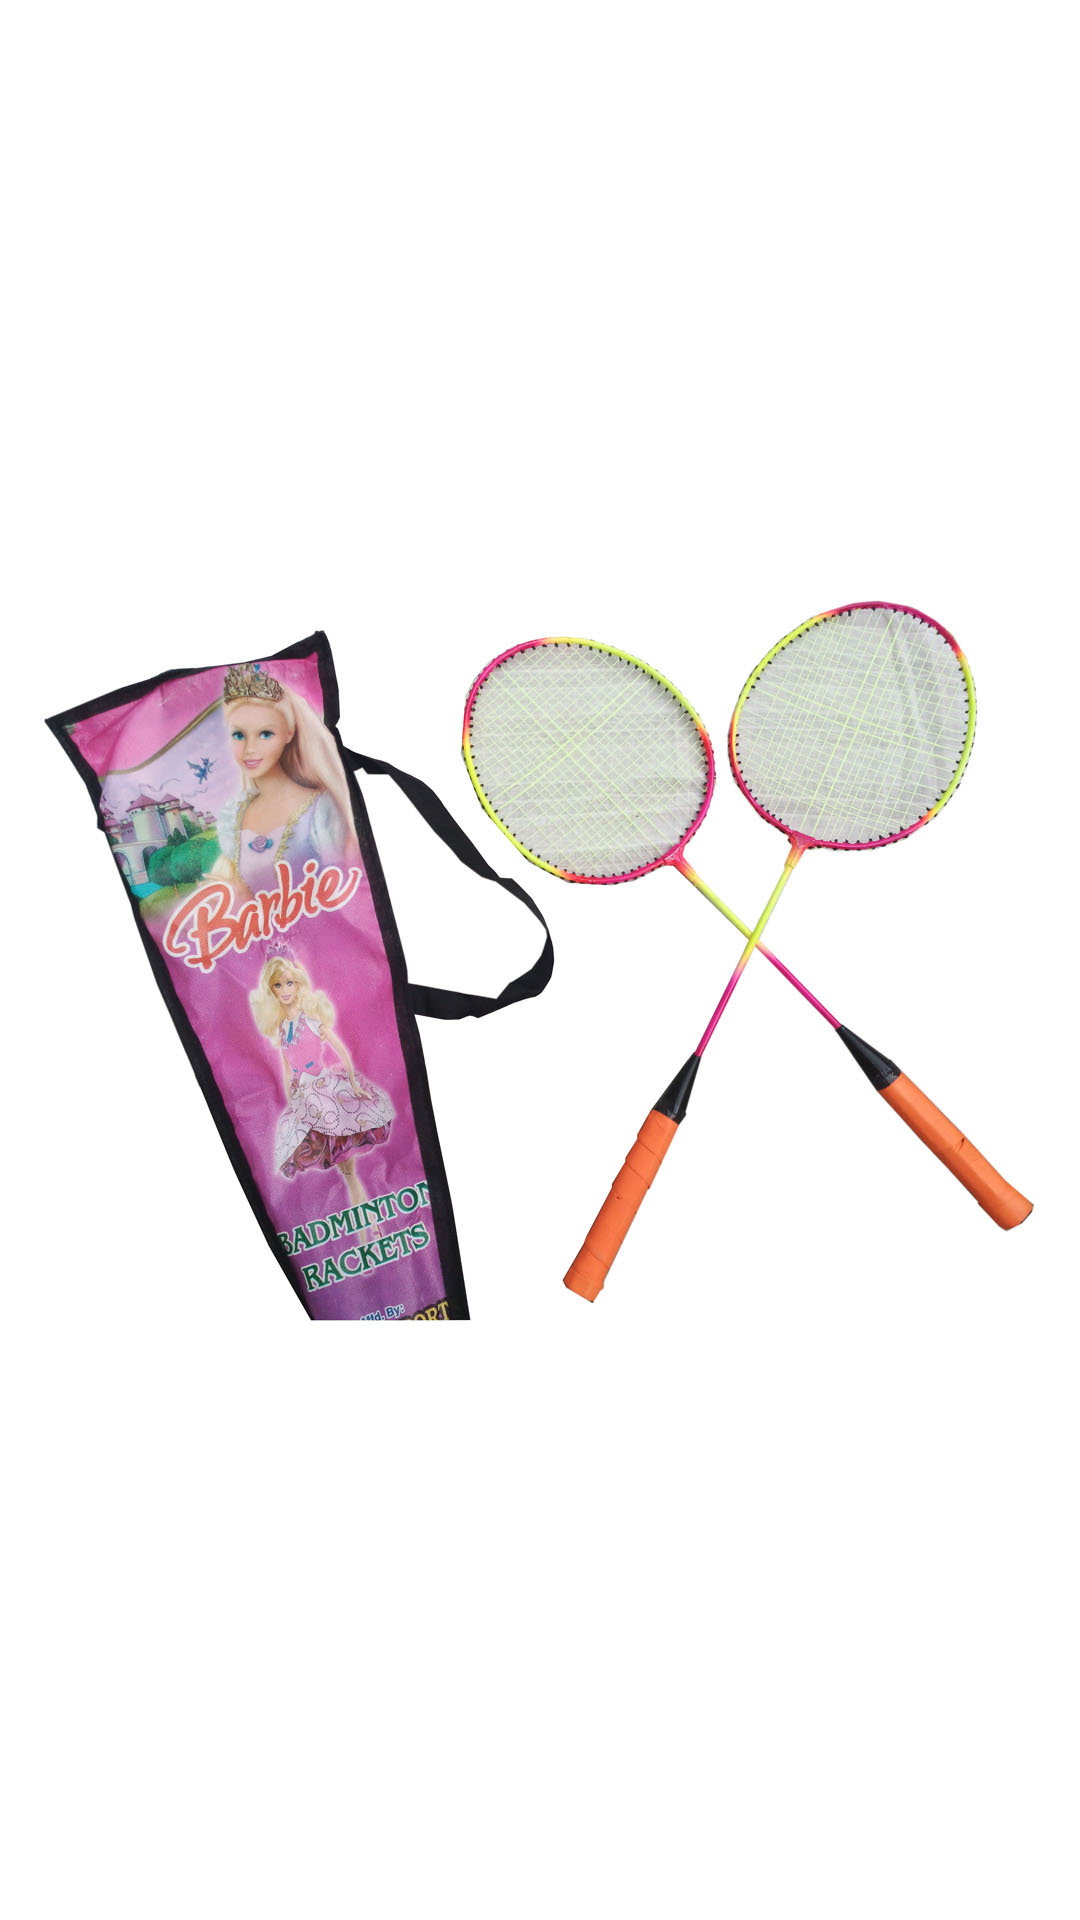 Oh BabyBadminton Racquets With Cover And 2 Shuttlecocks